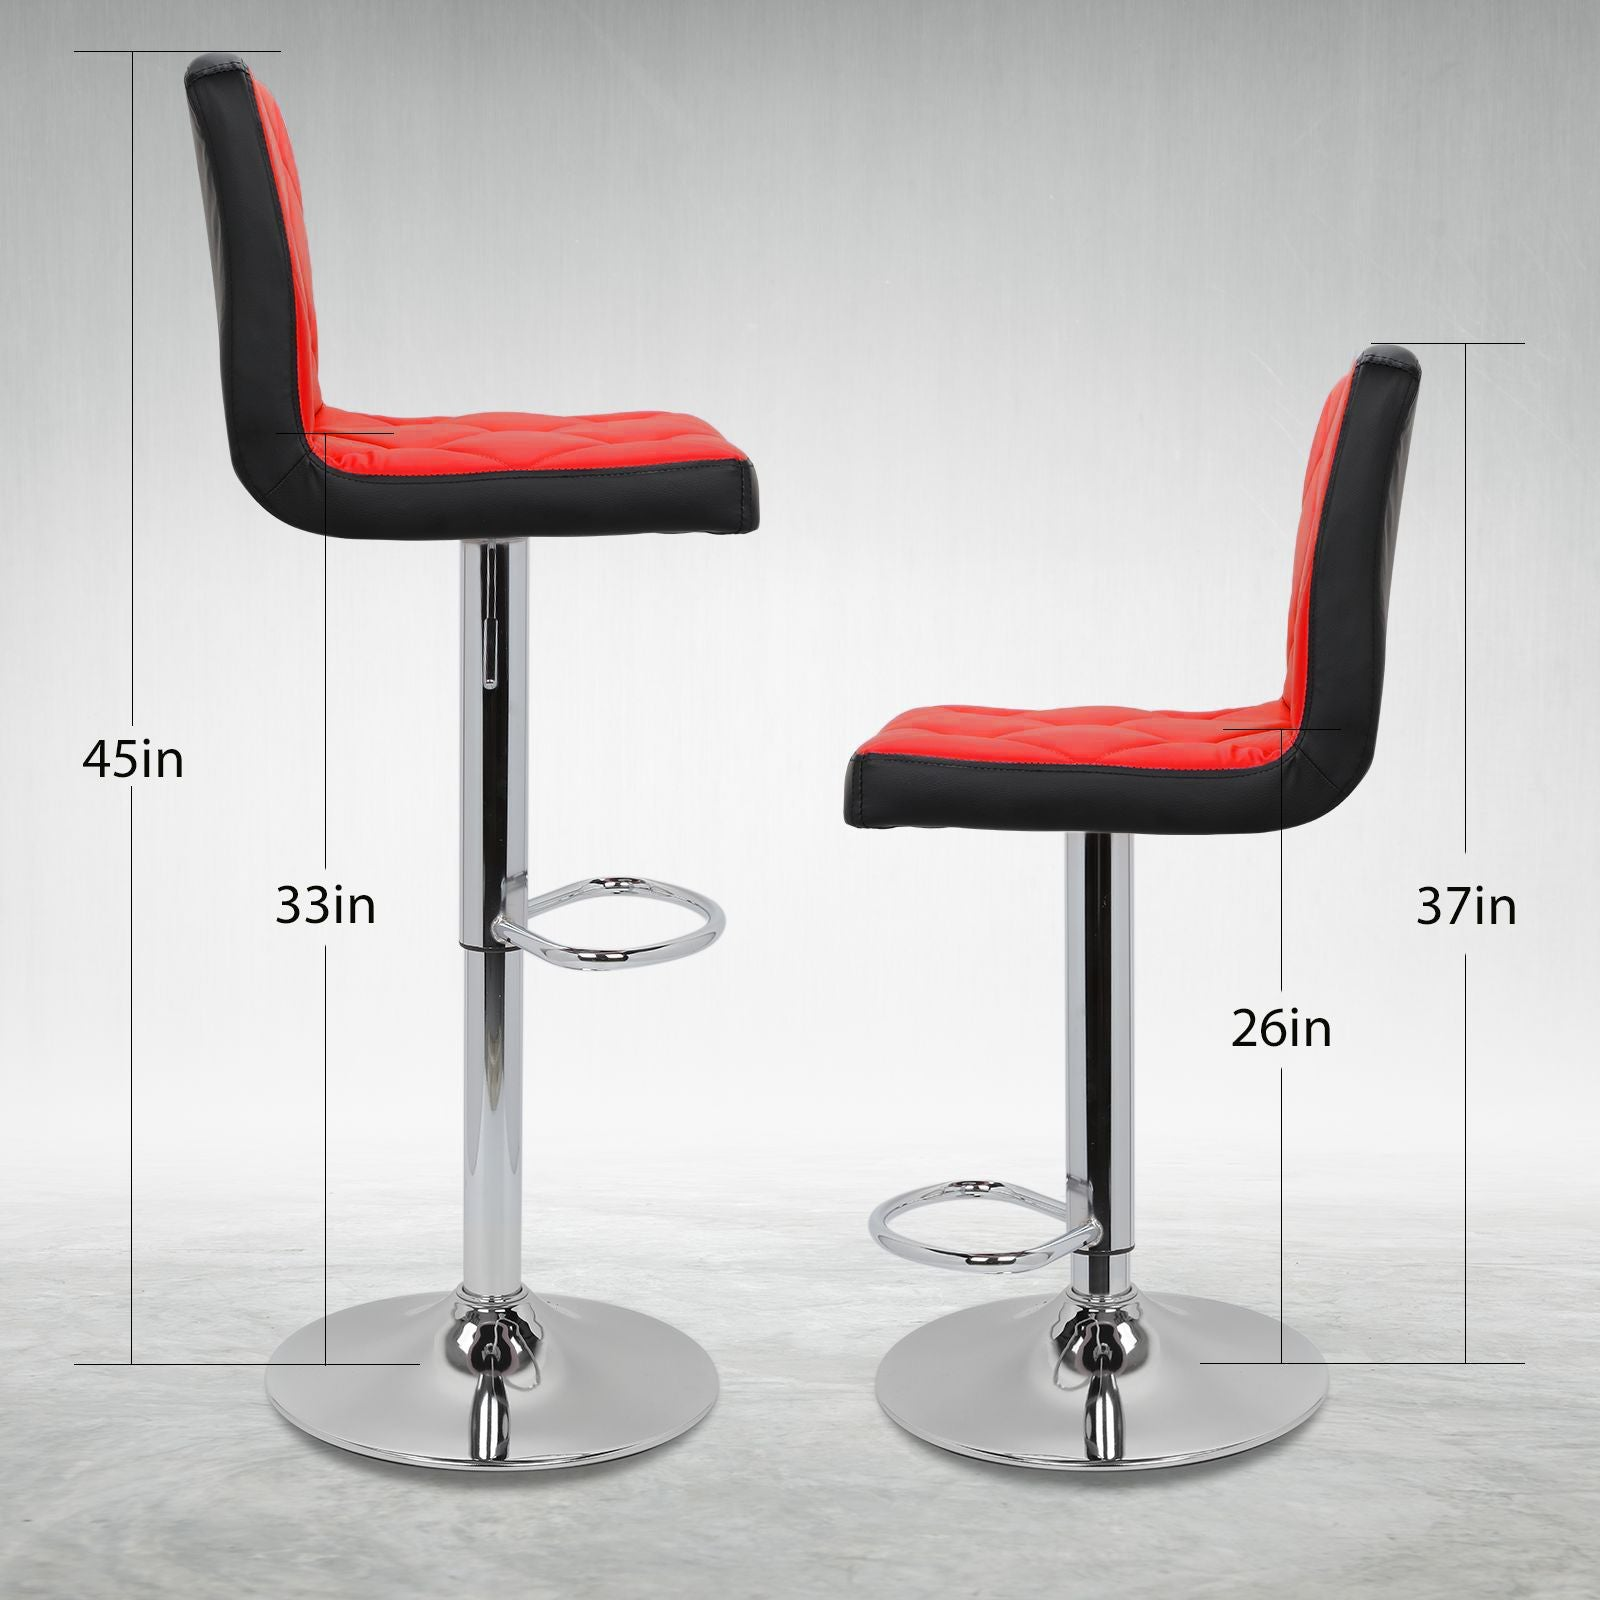 2pc Deluxe Mixed Color Leather Swivel Pub Bar Stools Counter Stools Kitchen Stools with Backs - Size